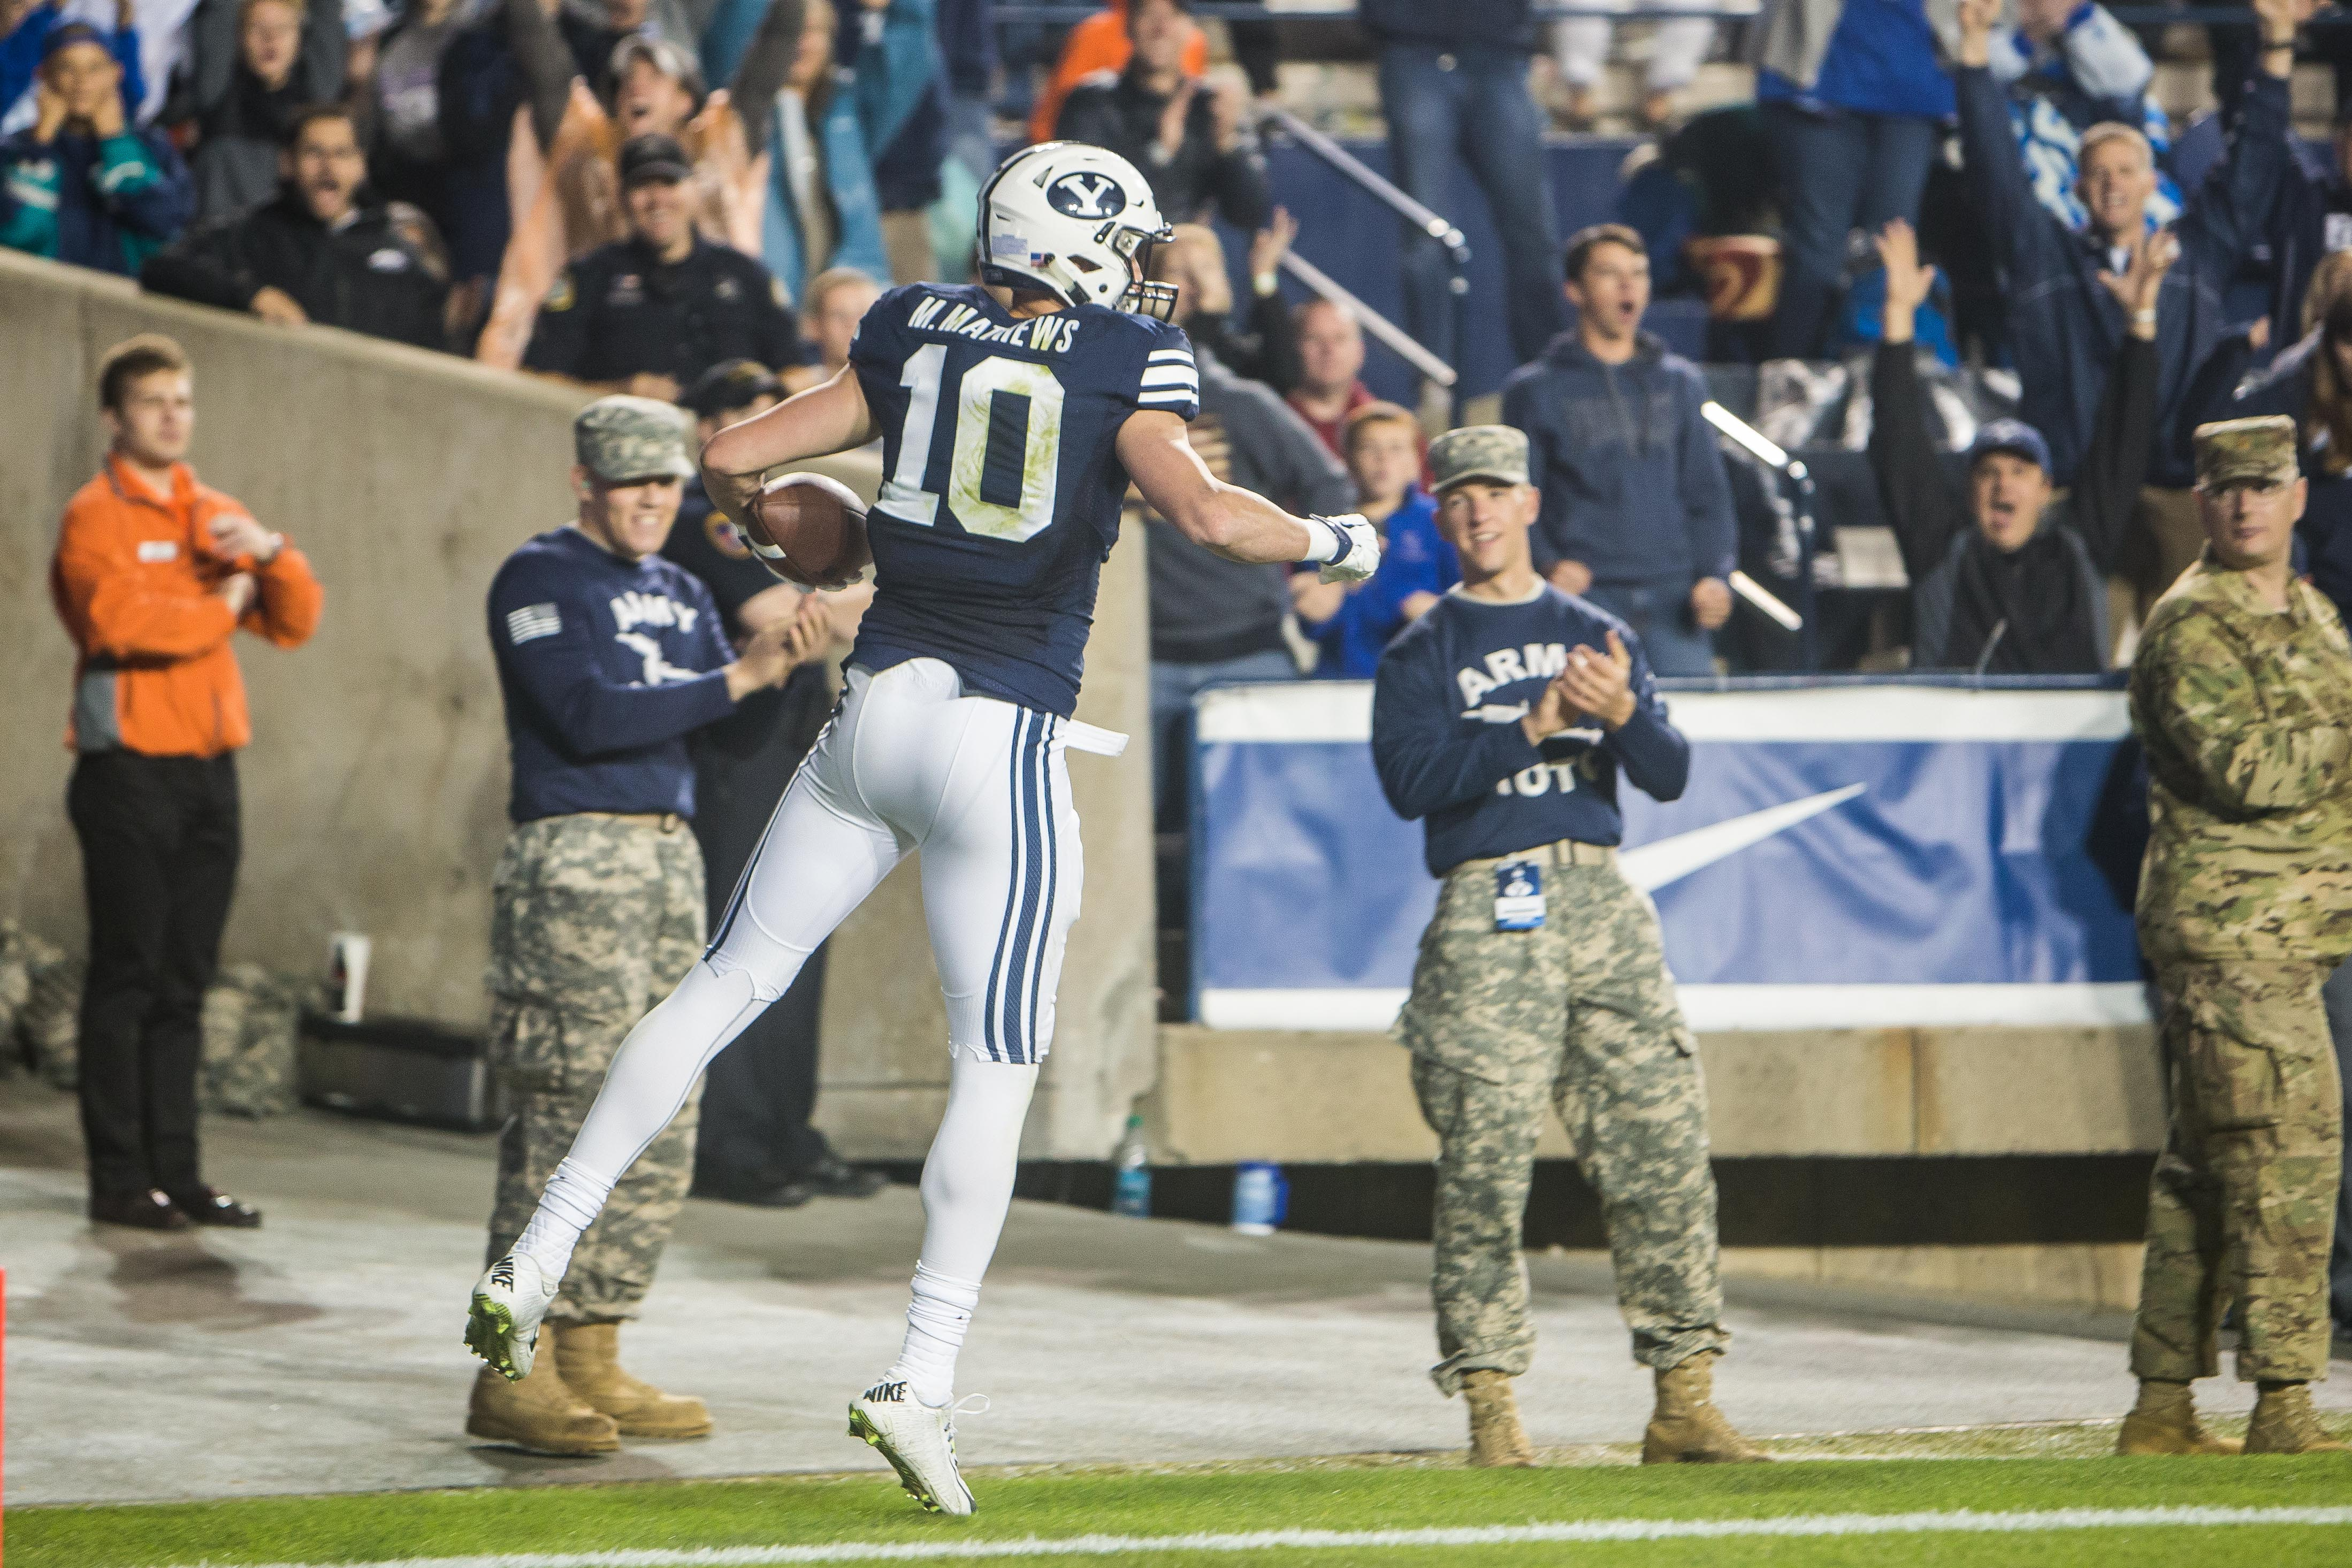 BYU downs UConn in fourth quarter, prepares for Homecoming against